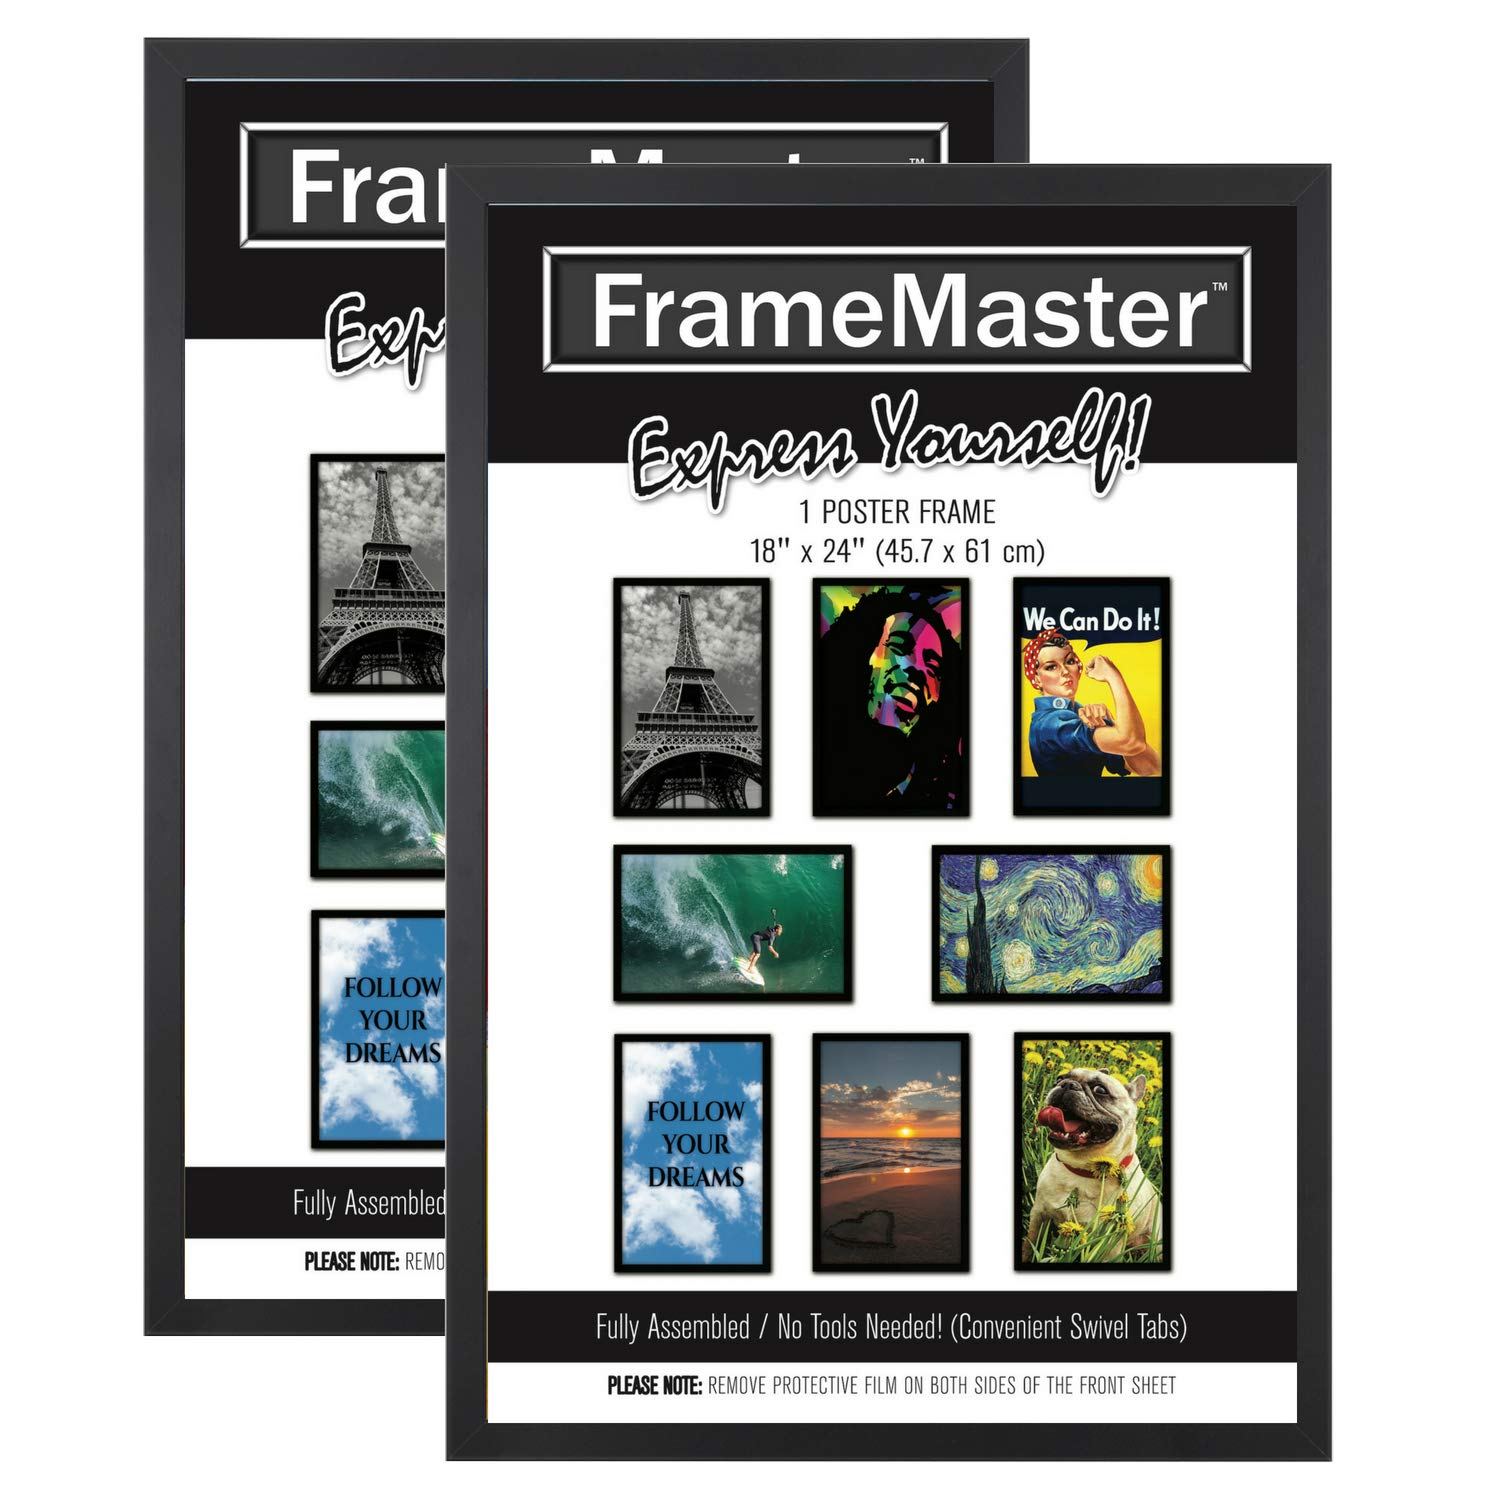 FrameMaster 18x24 Poster Frame (2 Pack), Black Wood Composite, Gallery Edition